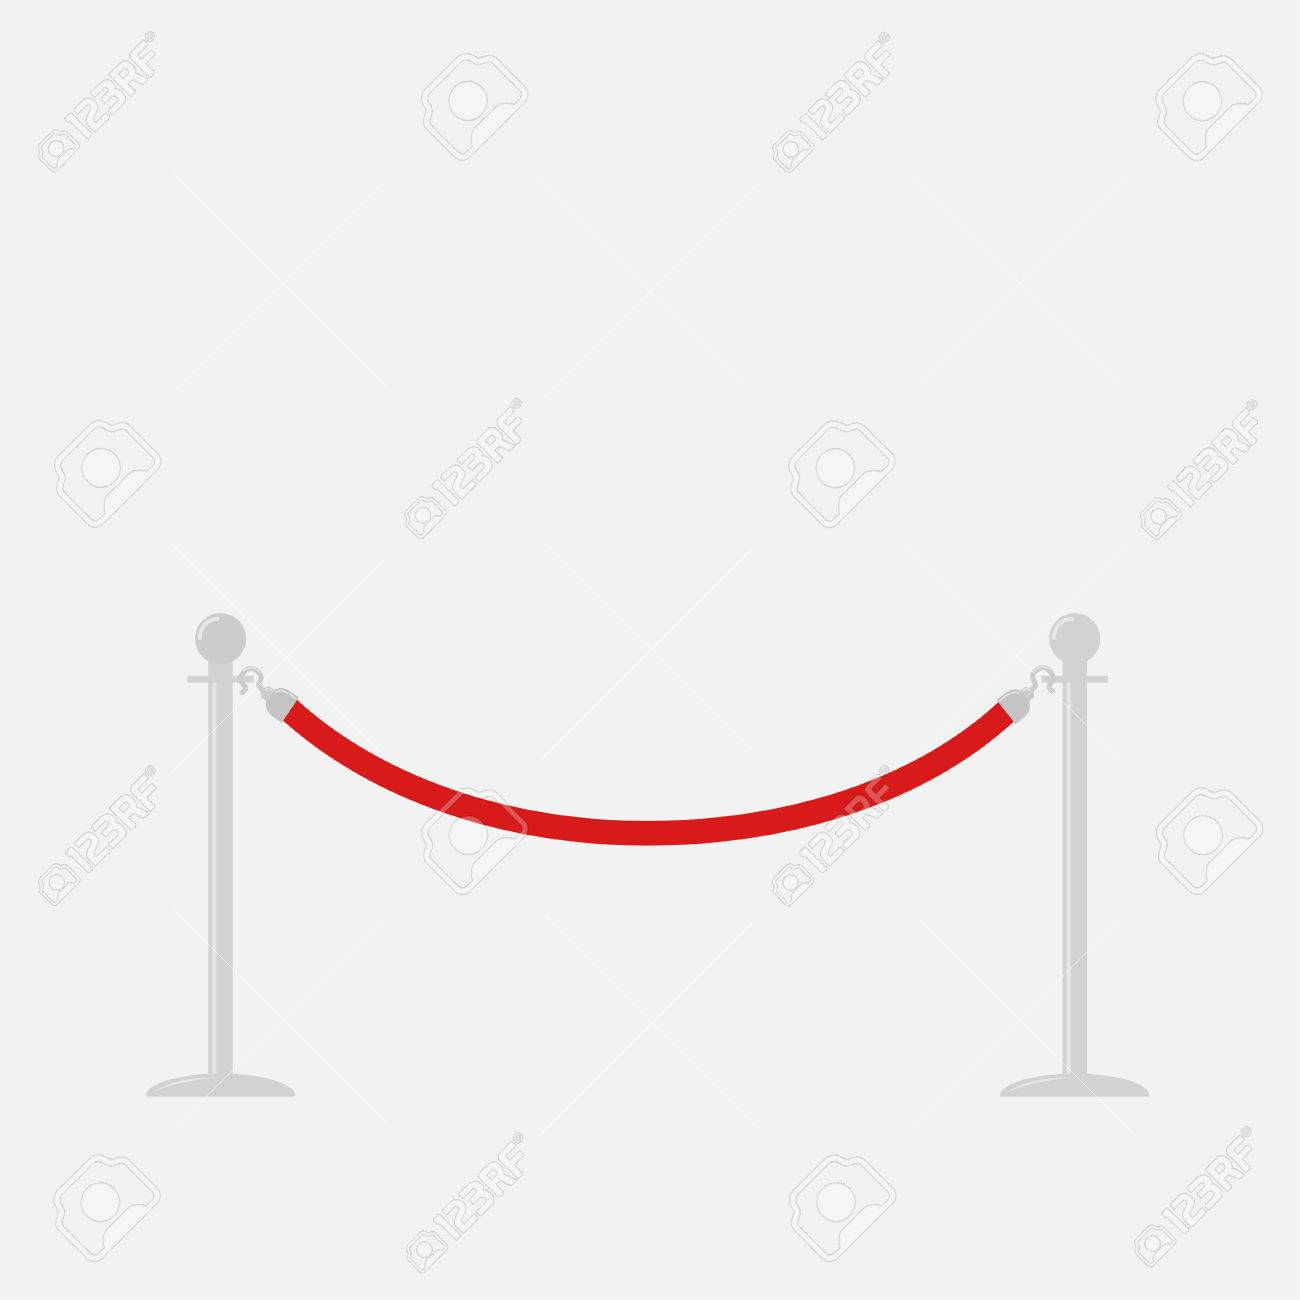 Red Rope Barrier Stanchions Turnstile Isolated Template Flat ...